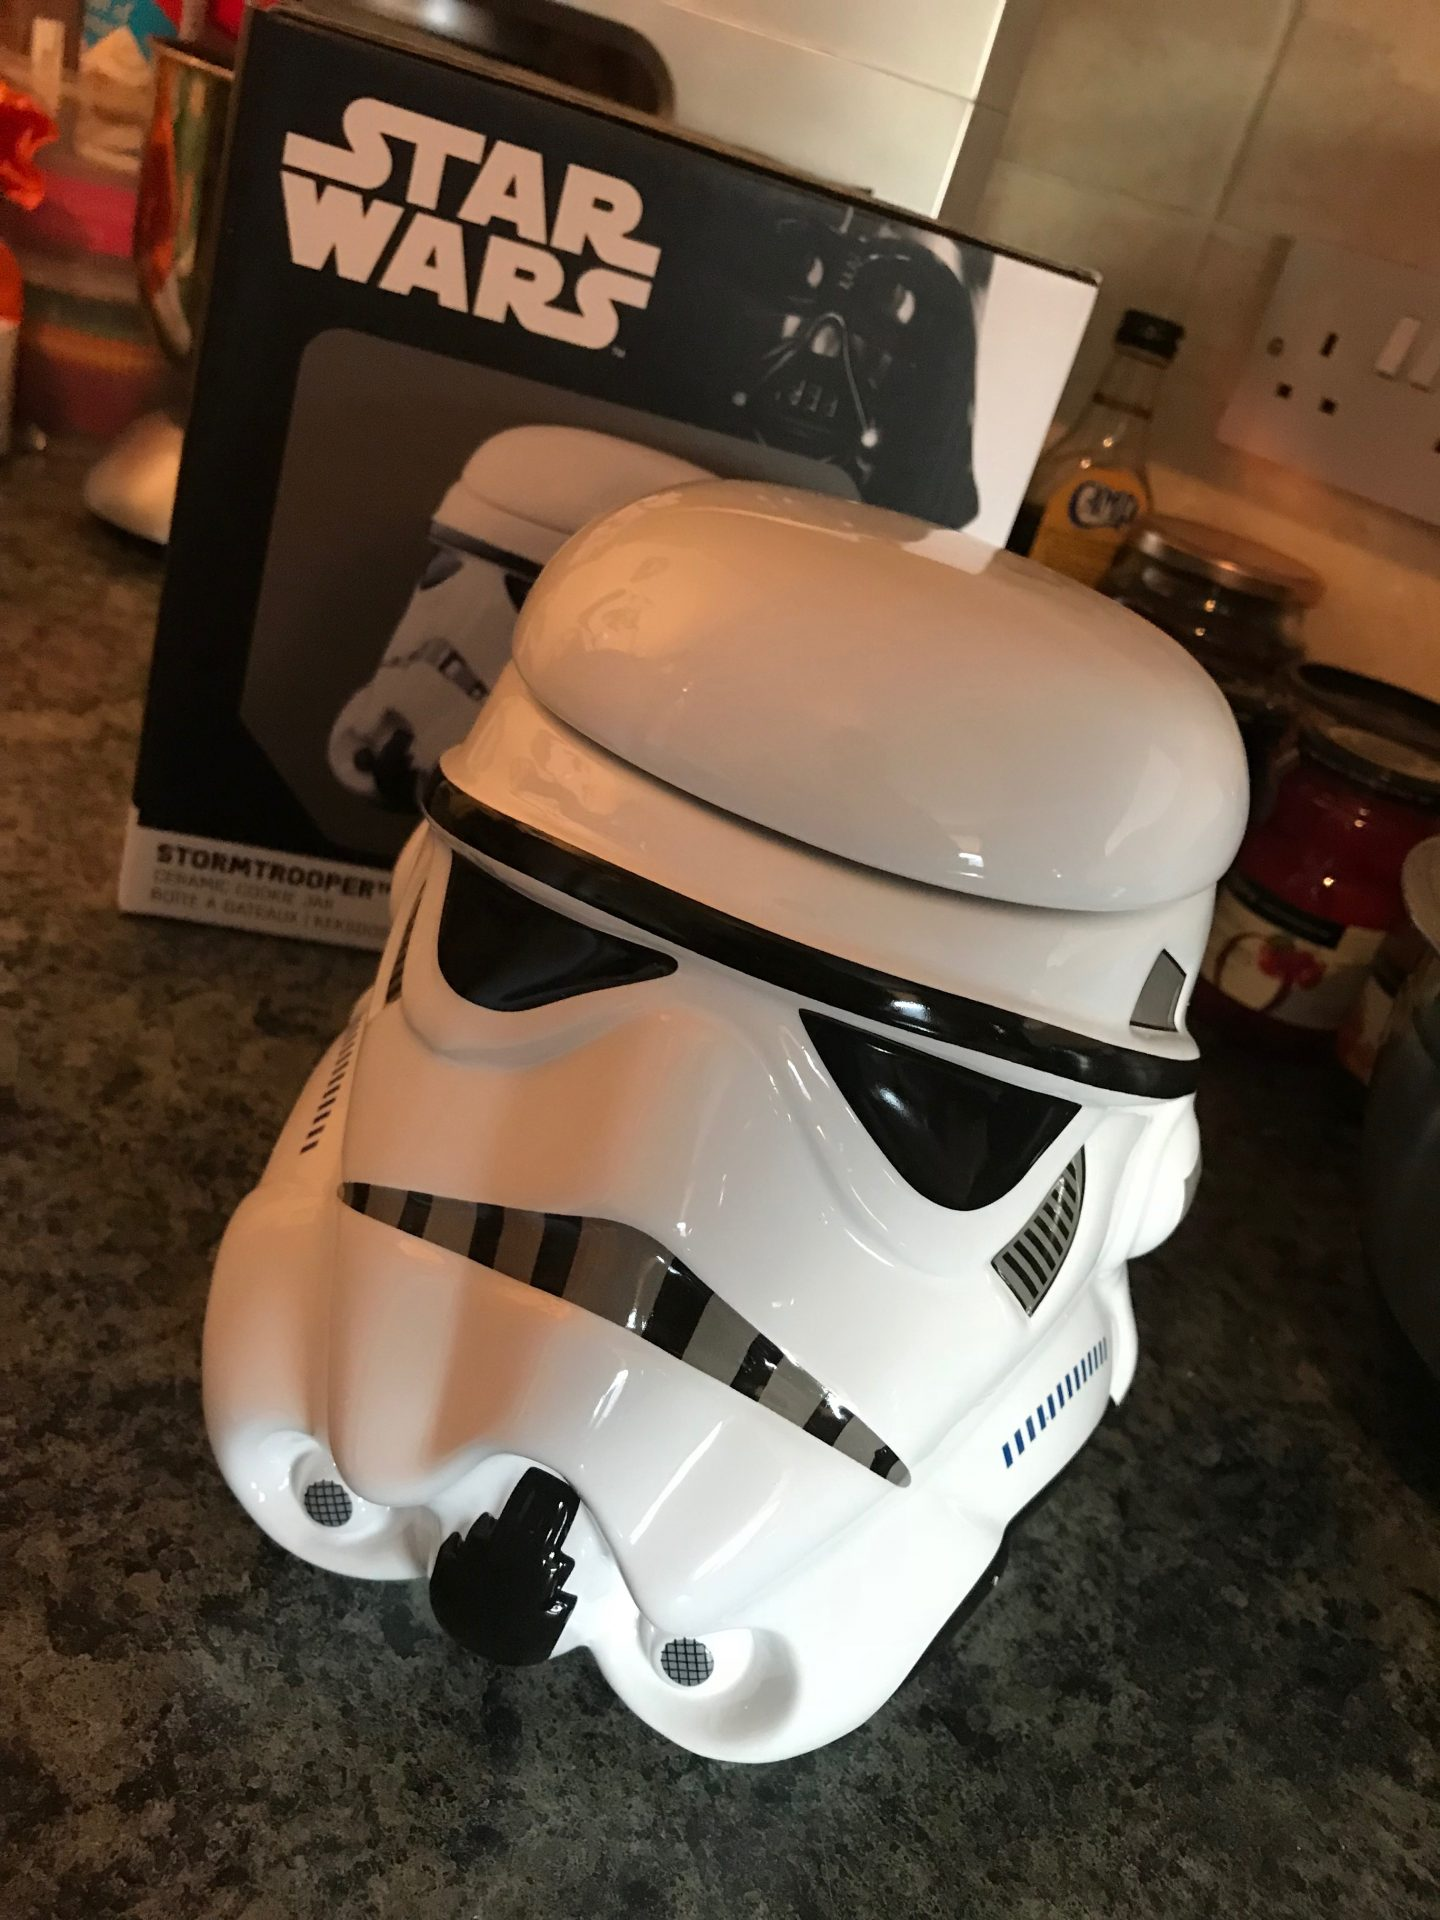 The geeky guy gift guide this christmas - Stormtrooper cookie jar ...